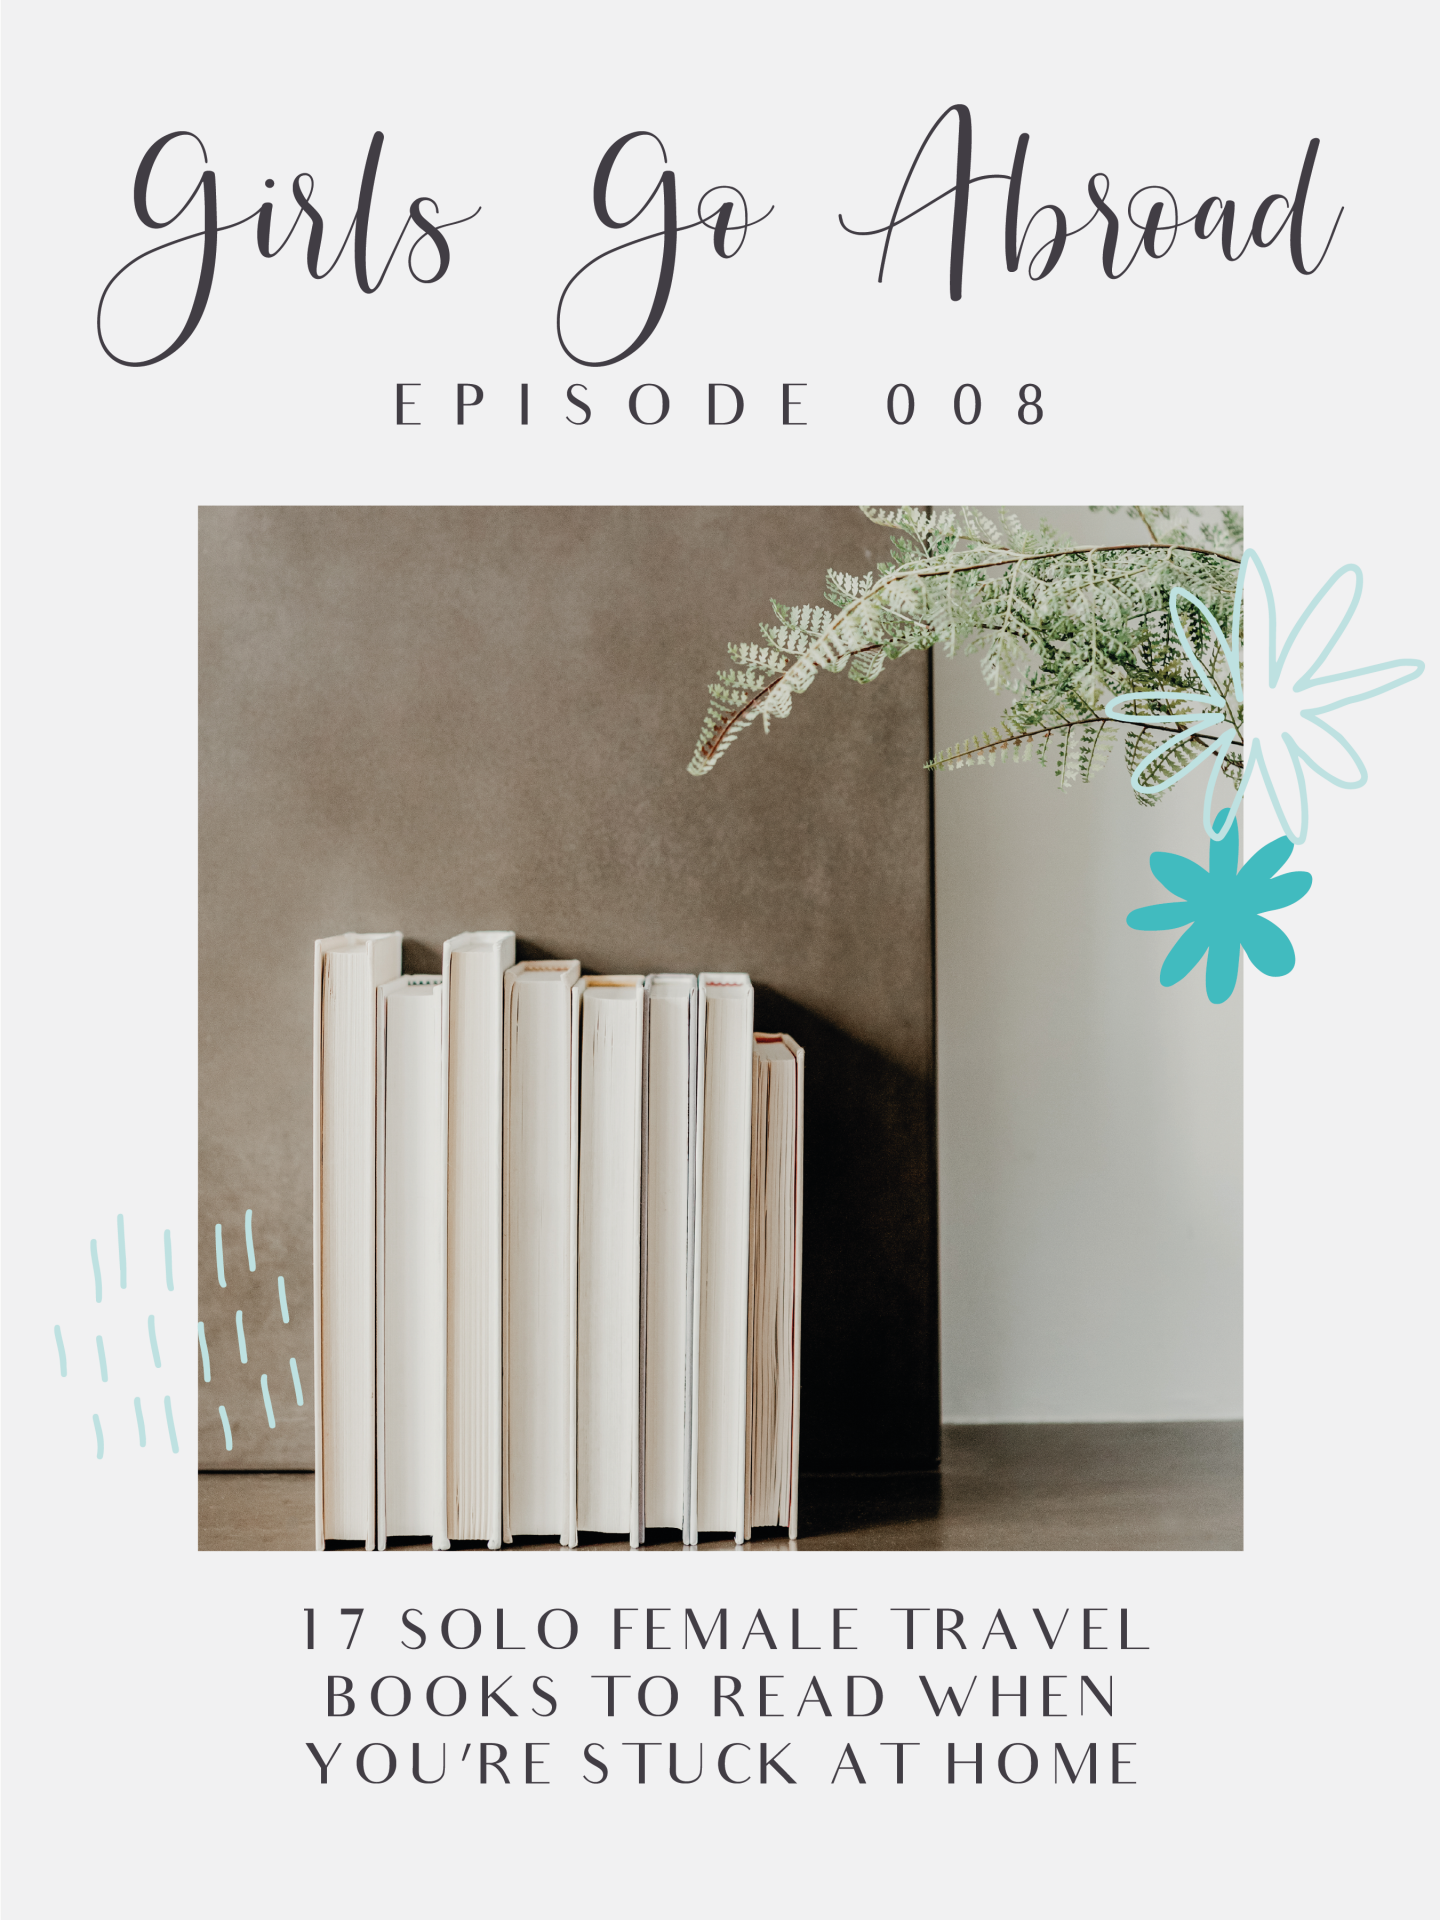 If you're looking for something to do when you're stuck at home and missing travel, then you need to read these 17 solo female travel books! They include Eat, Pray, Love, Wild, and more! #travel #books